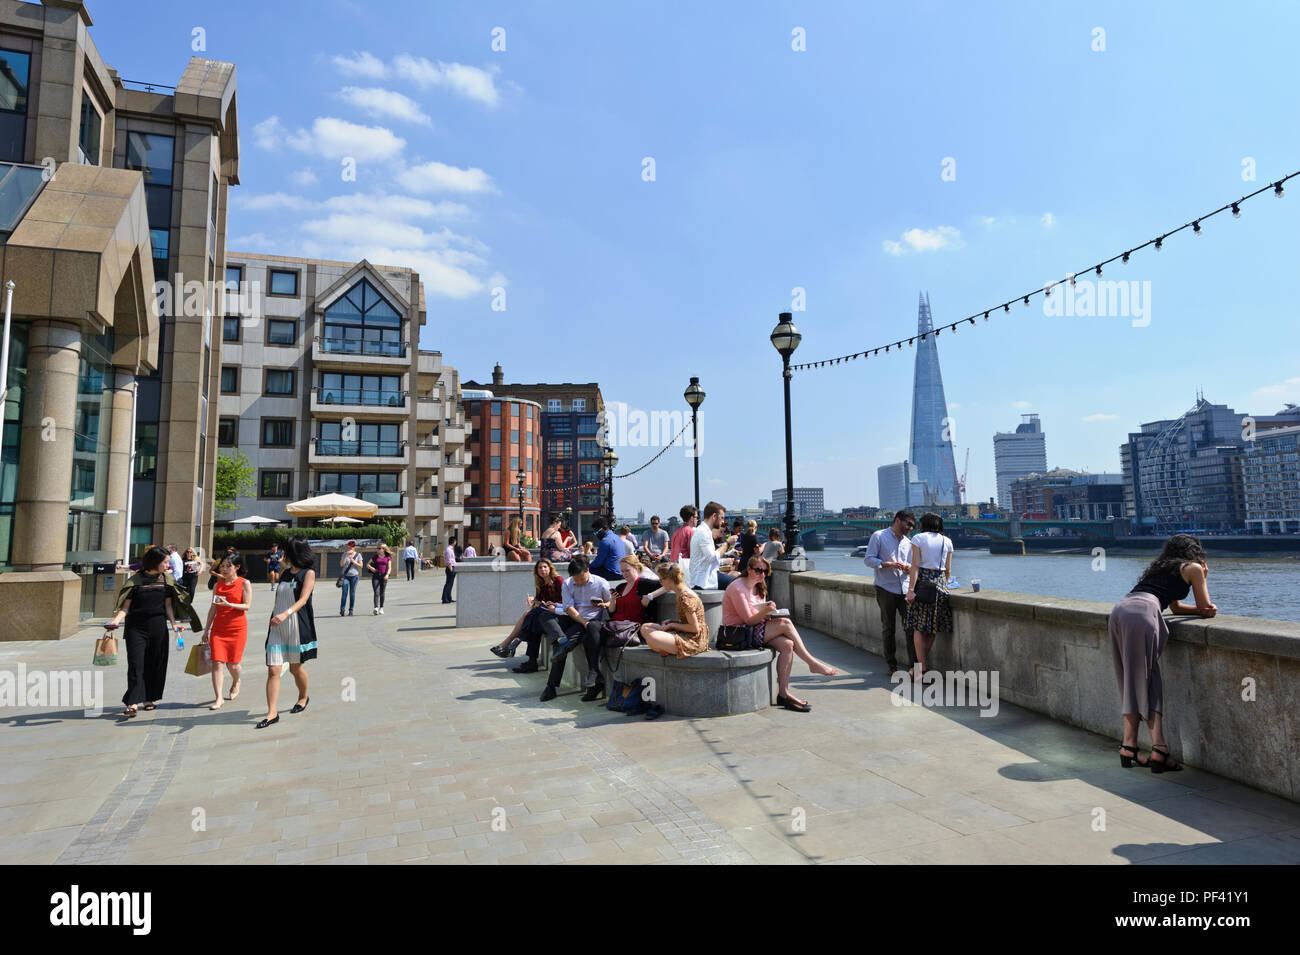 People enjoying the hot British weather relaxing by the Thames river bank, London, England, UK - Stock Image